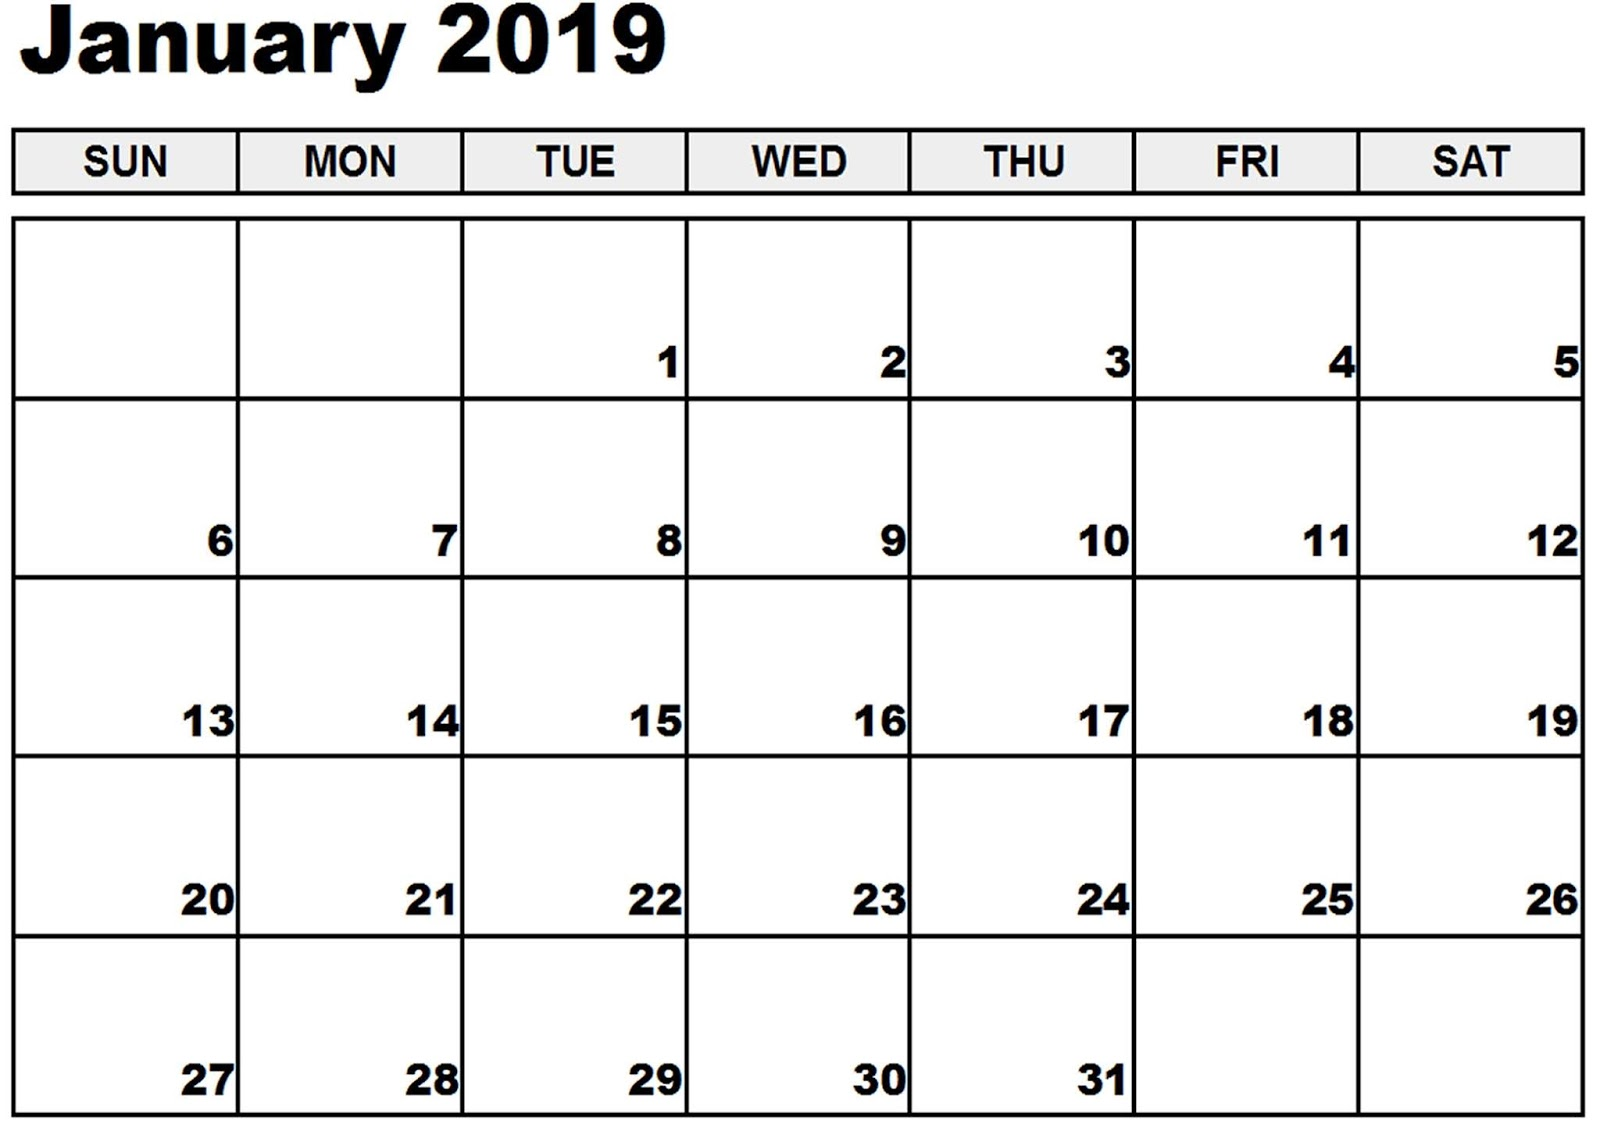 January 2019 Calendar With Holidays Online